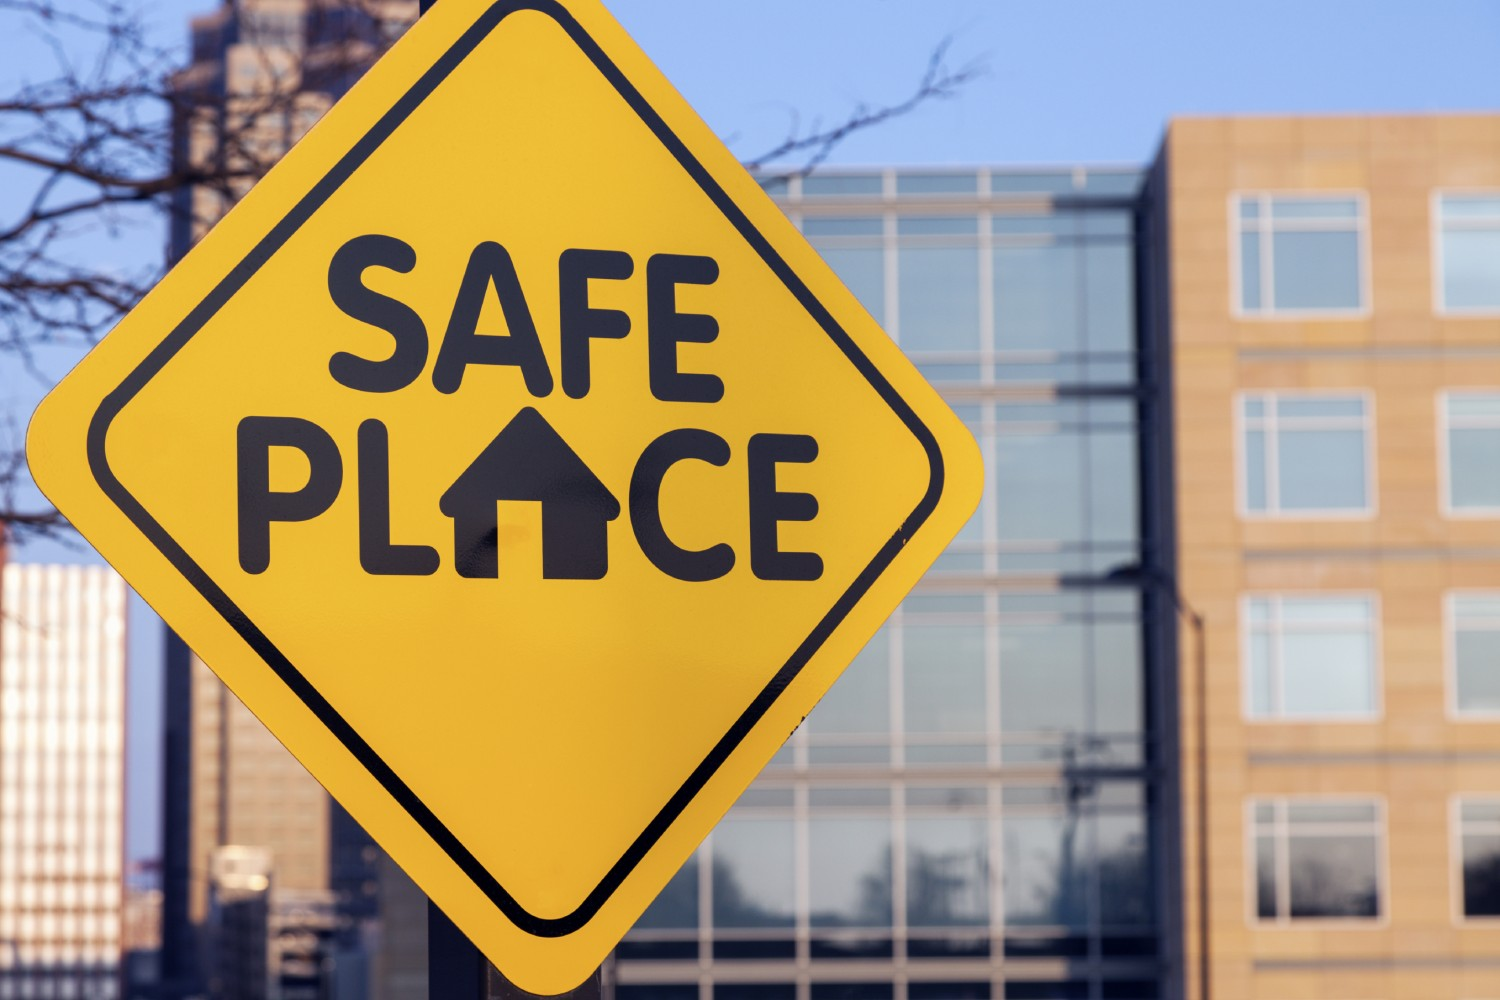 Safe place sign. Seen in downtown of Des Moines, Iowa, USA.